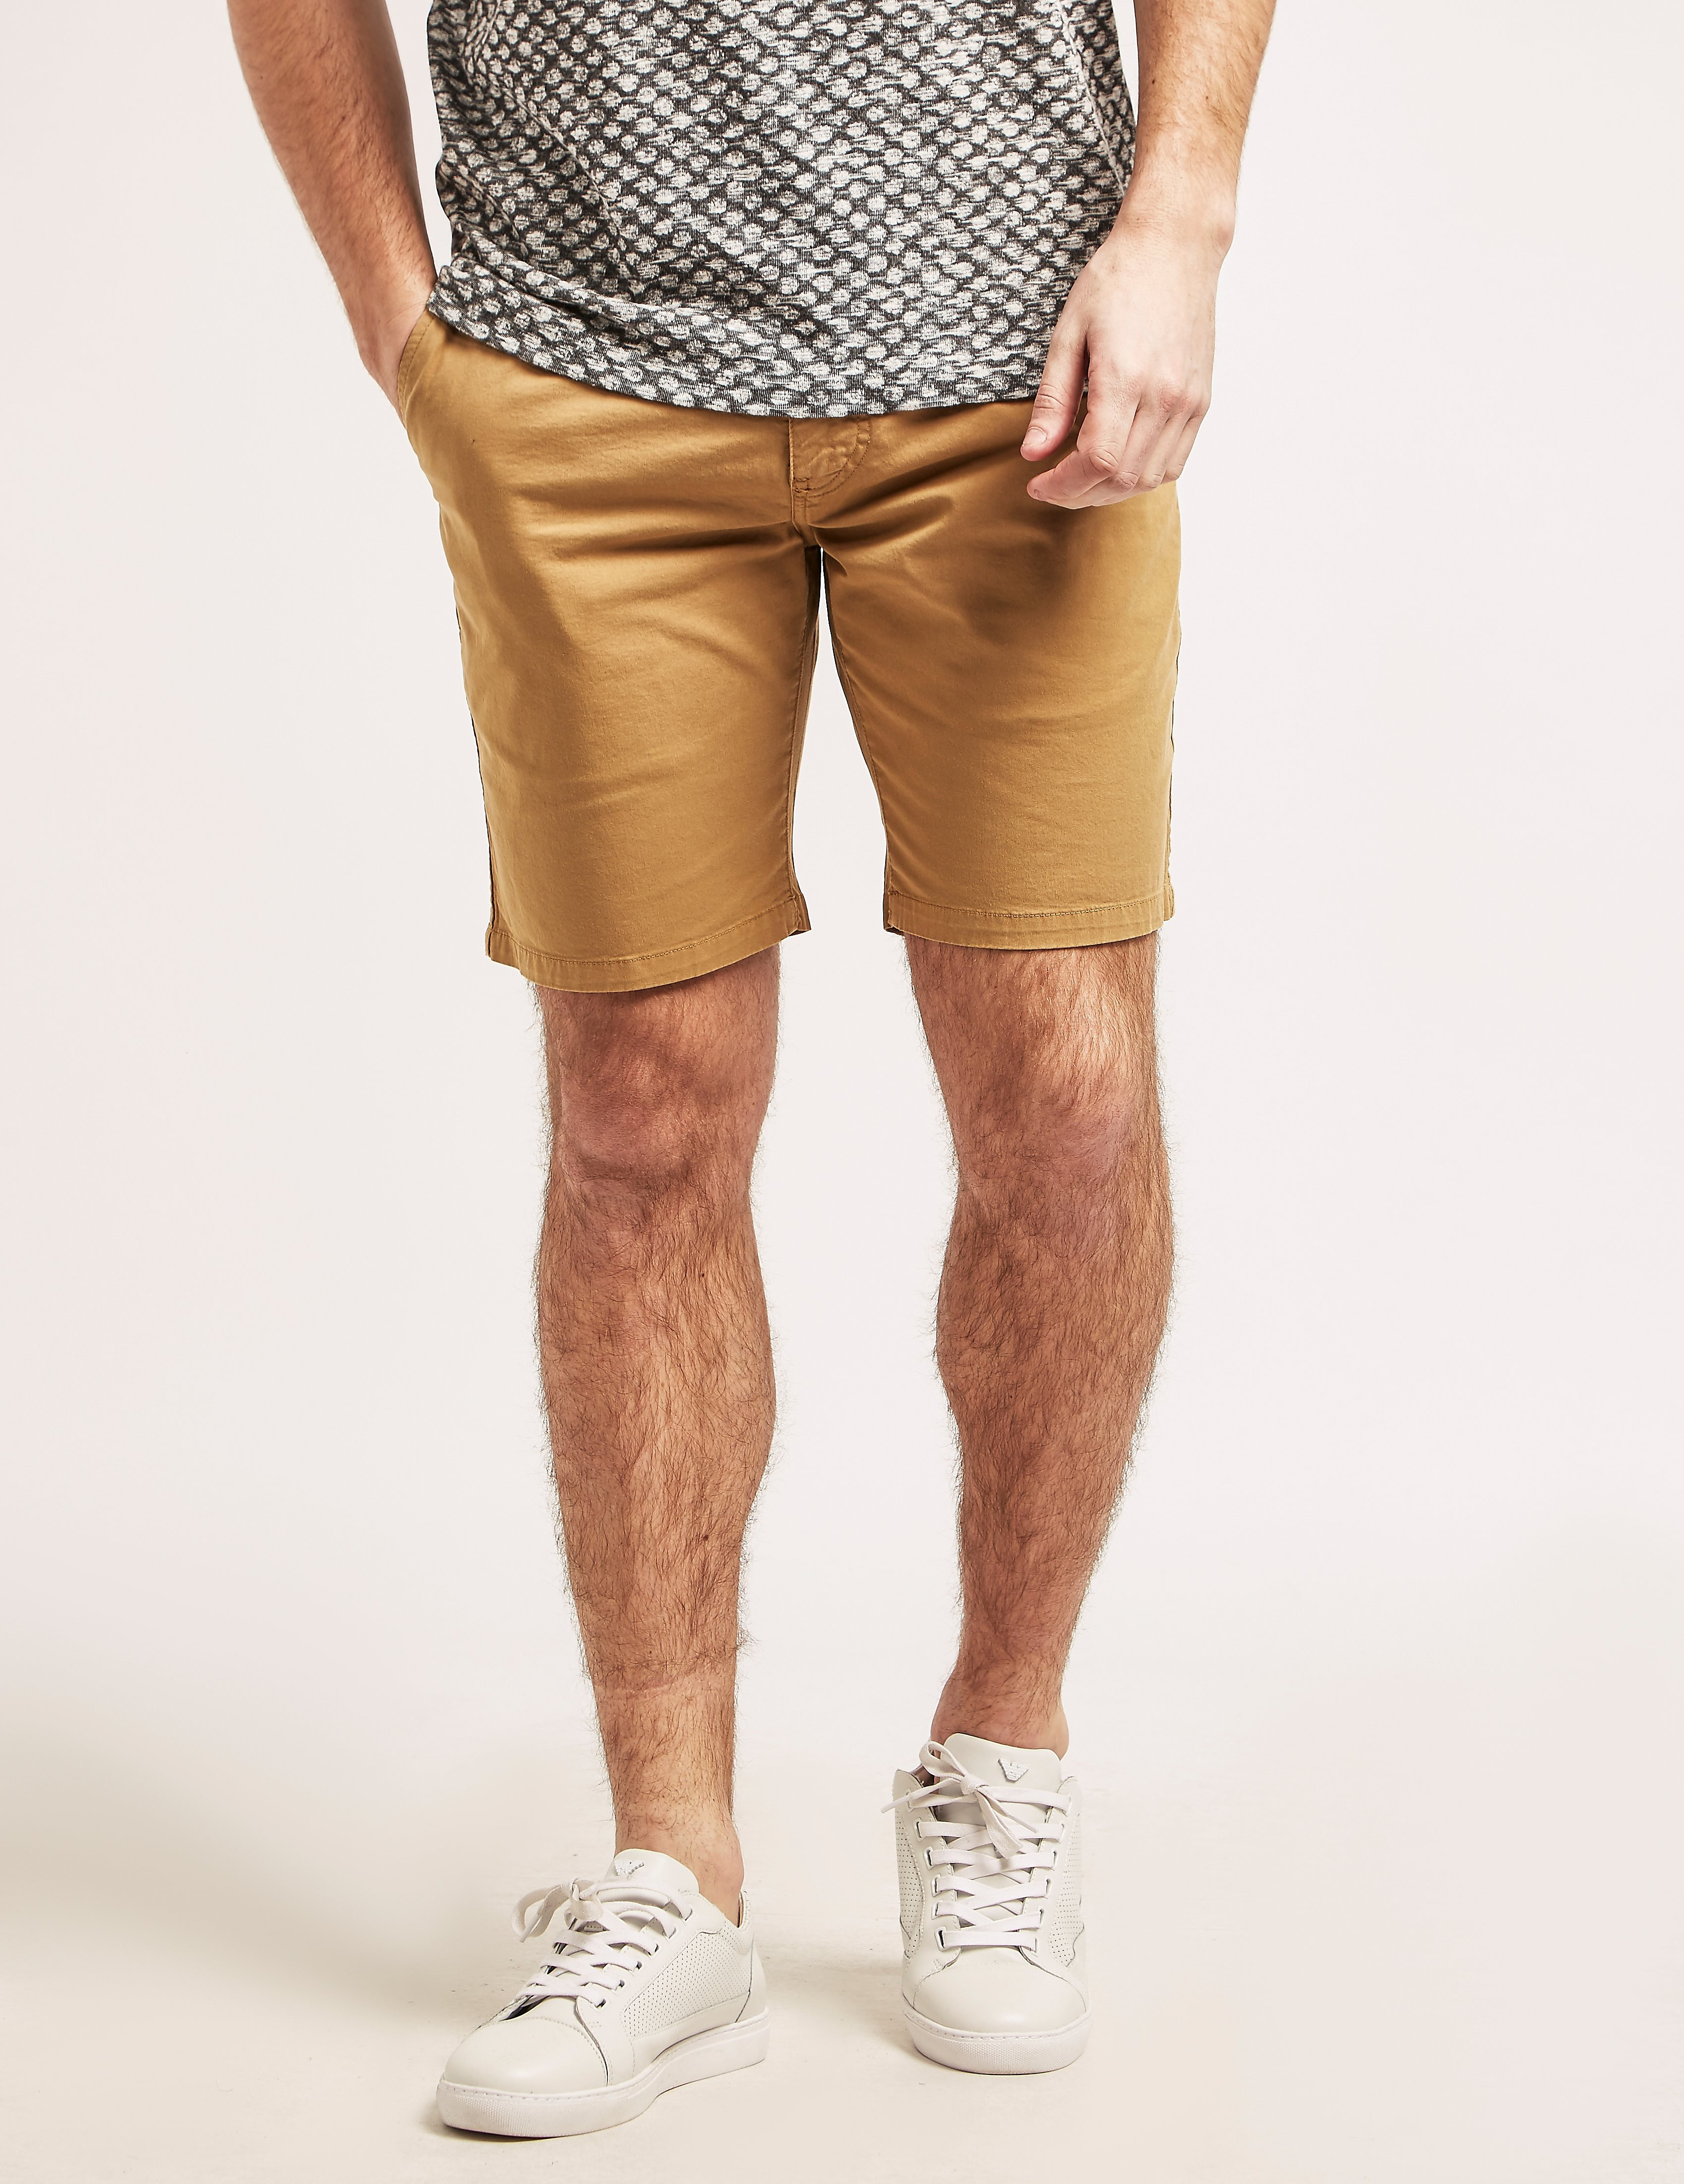 Paul Smith Chino Shorts